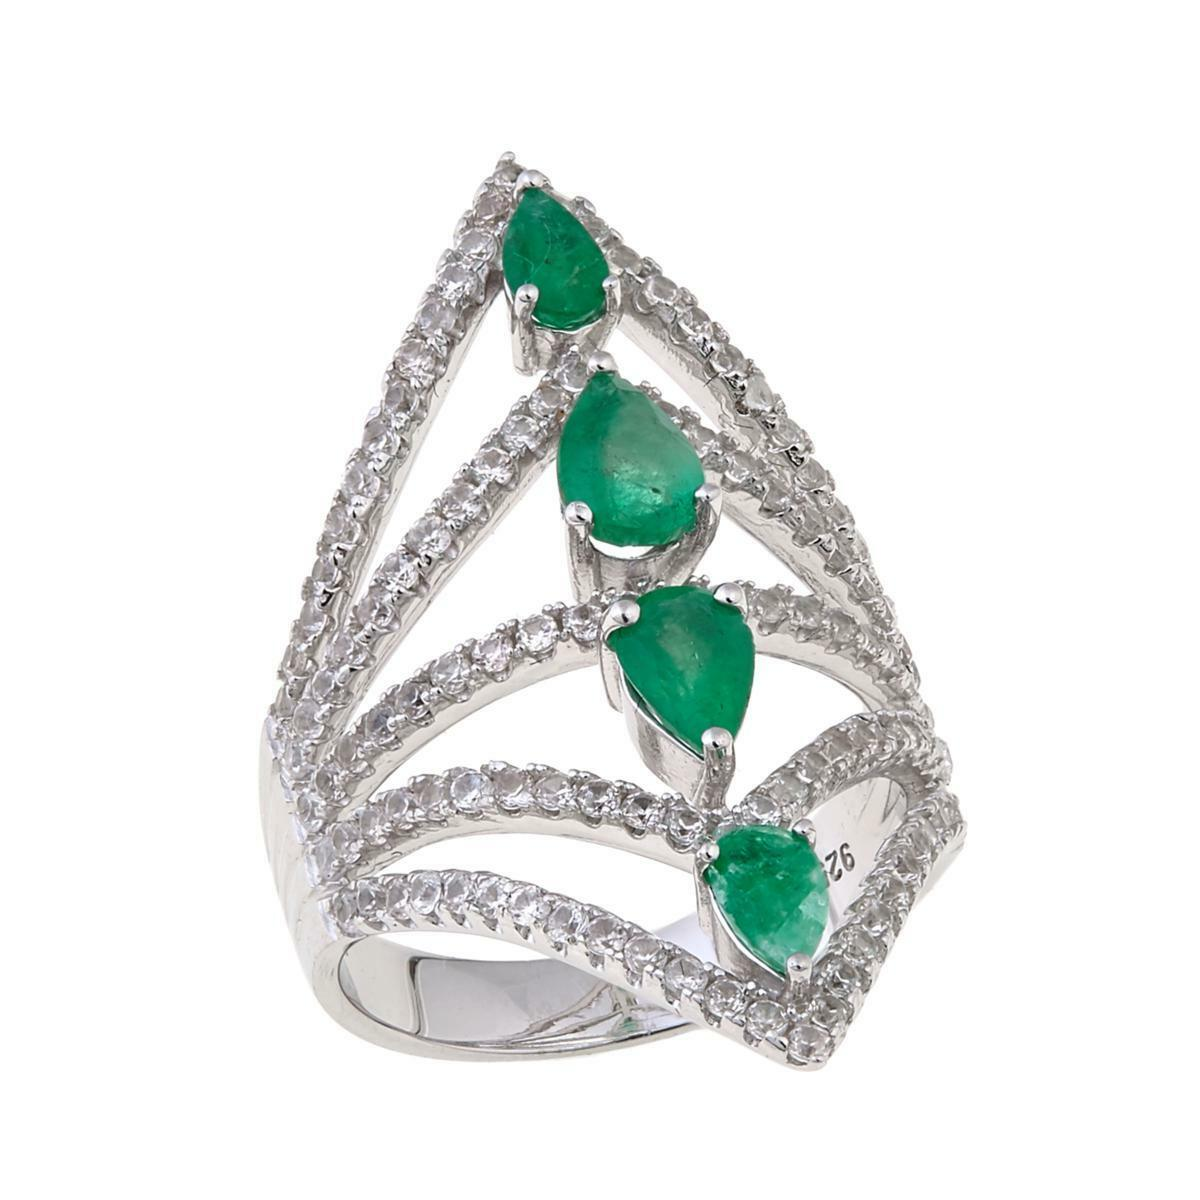 RARITIES CAROL BRODIE 1.84 CTW TRIANGULAR EMERALD NEGATIVE SPACE RING SIZE 6 HSN